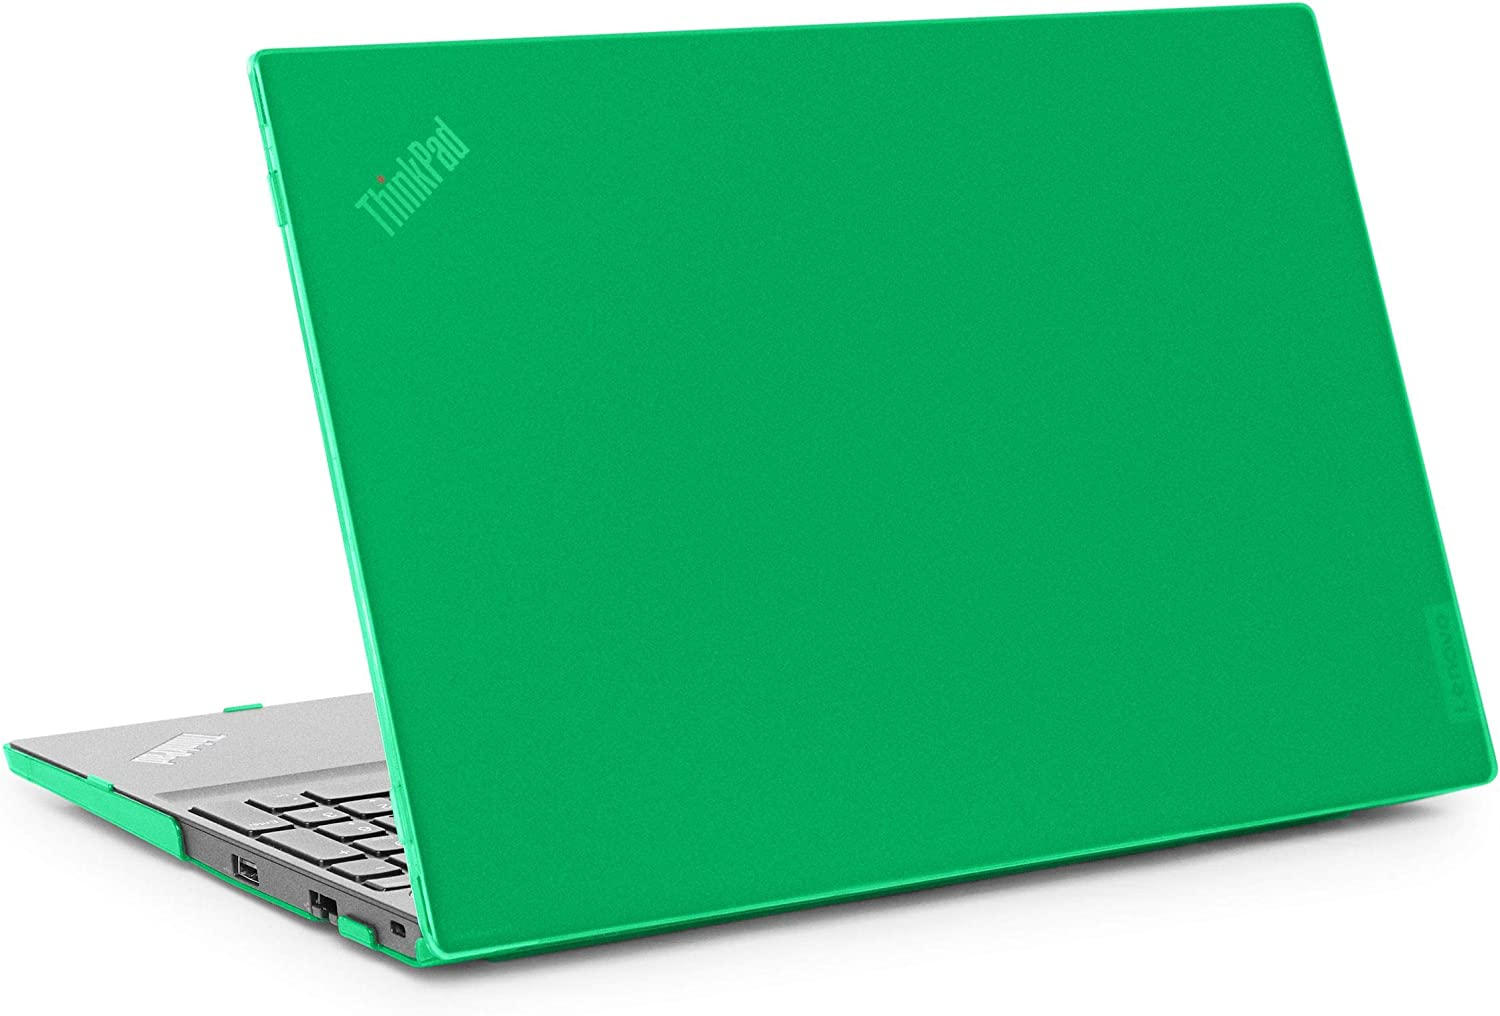 mCover Hard Shell Case for 2020 Lenovo ThinkPad E15 AMD Gen 2 15.6-inch Laptop Computers ( NOT Fitting Other Lenovo laptops ) - LENOVO-ThinkPad-E15-G2 Green